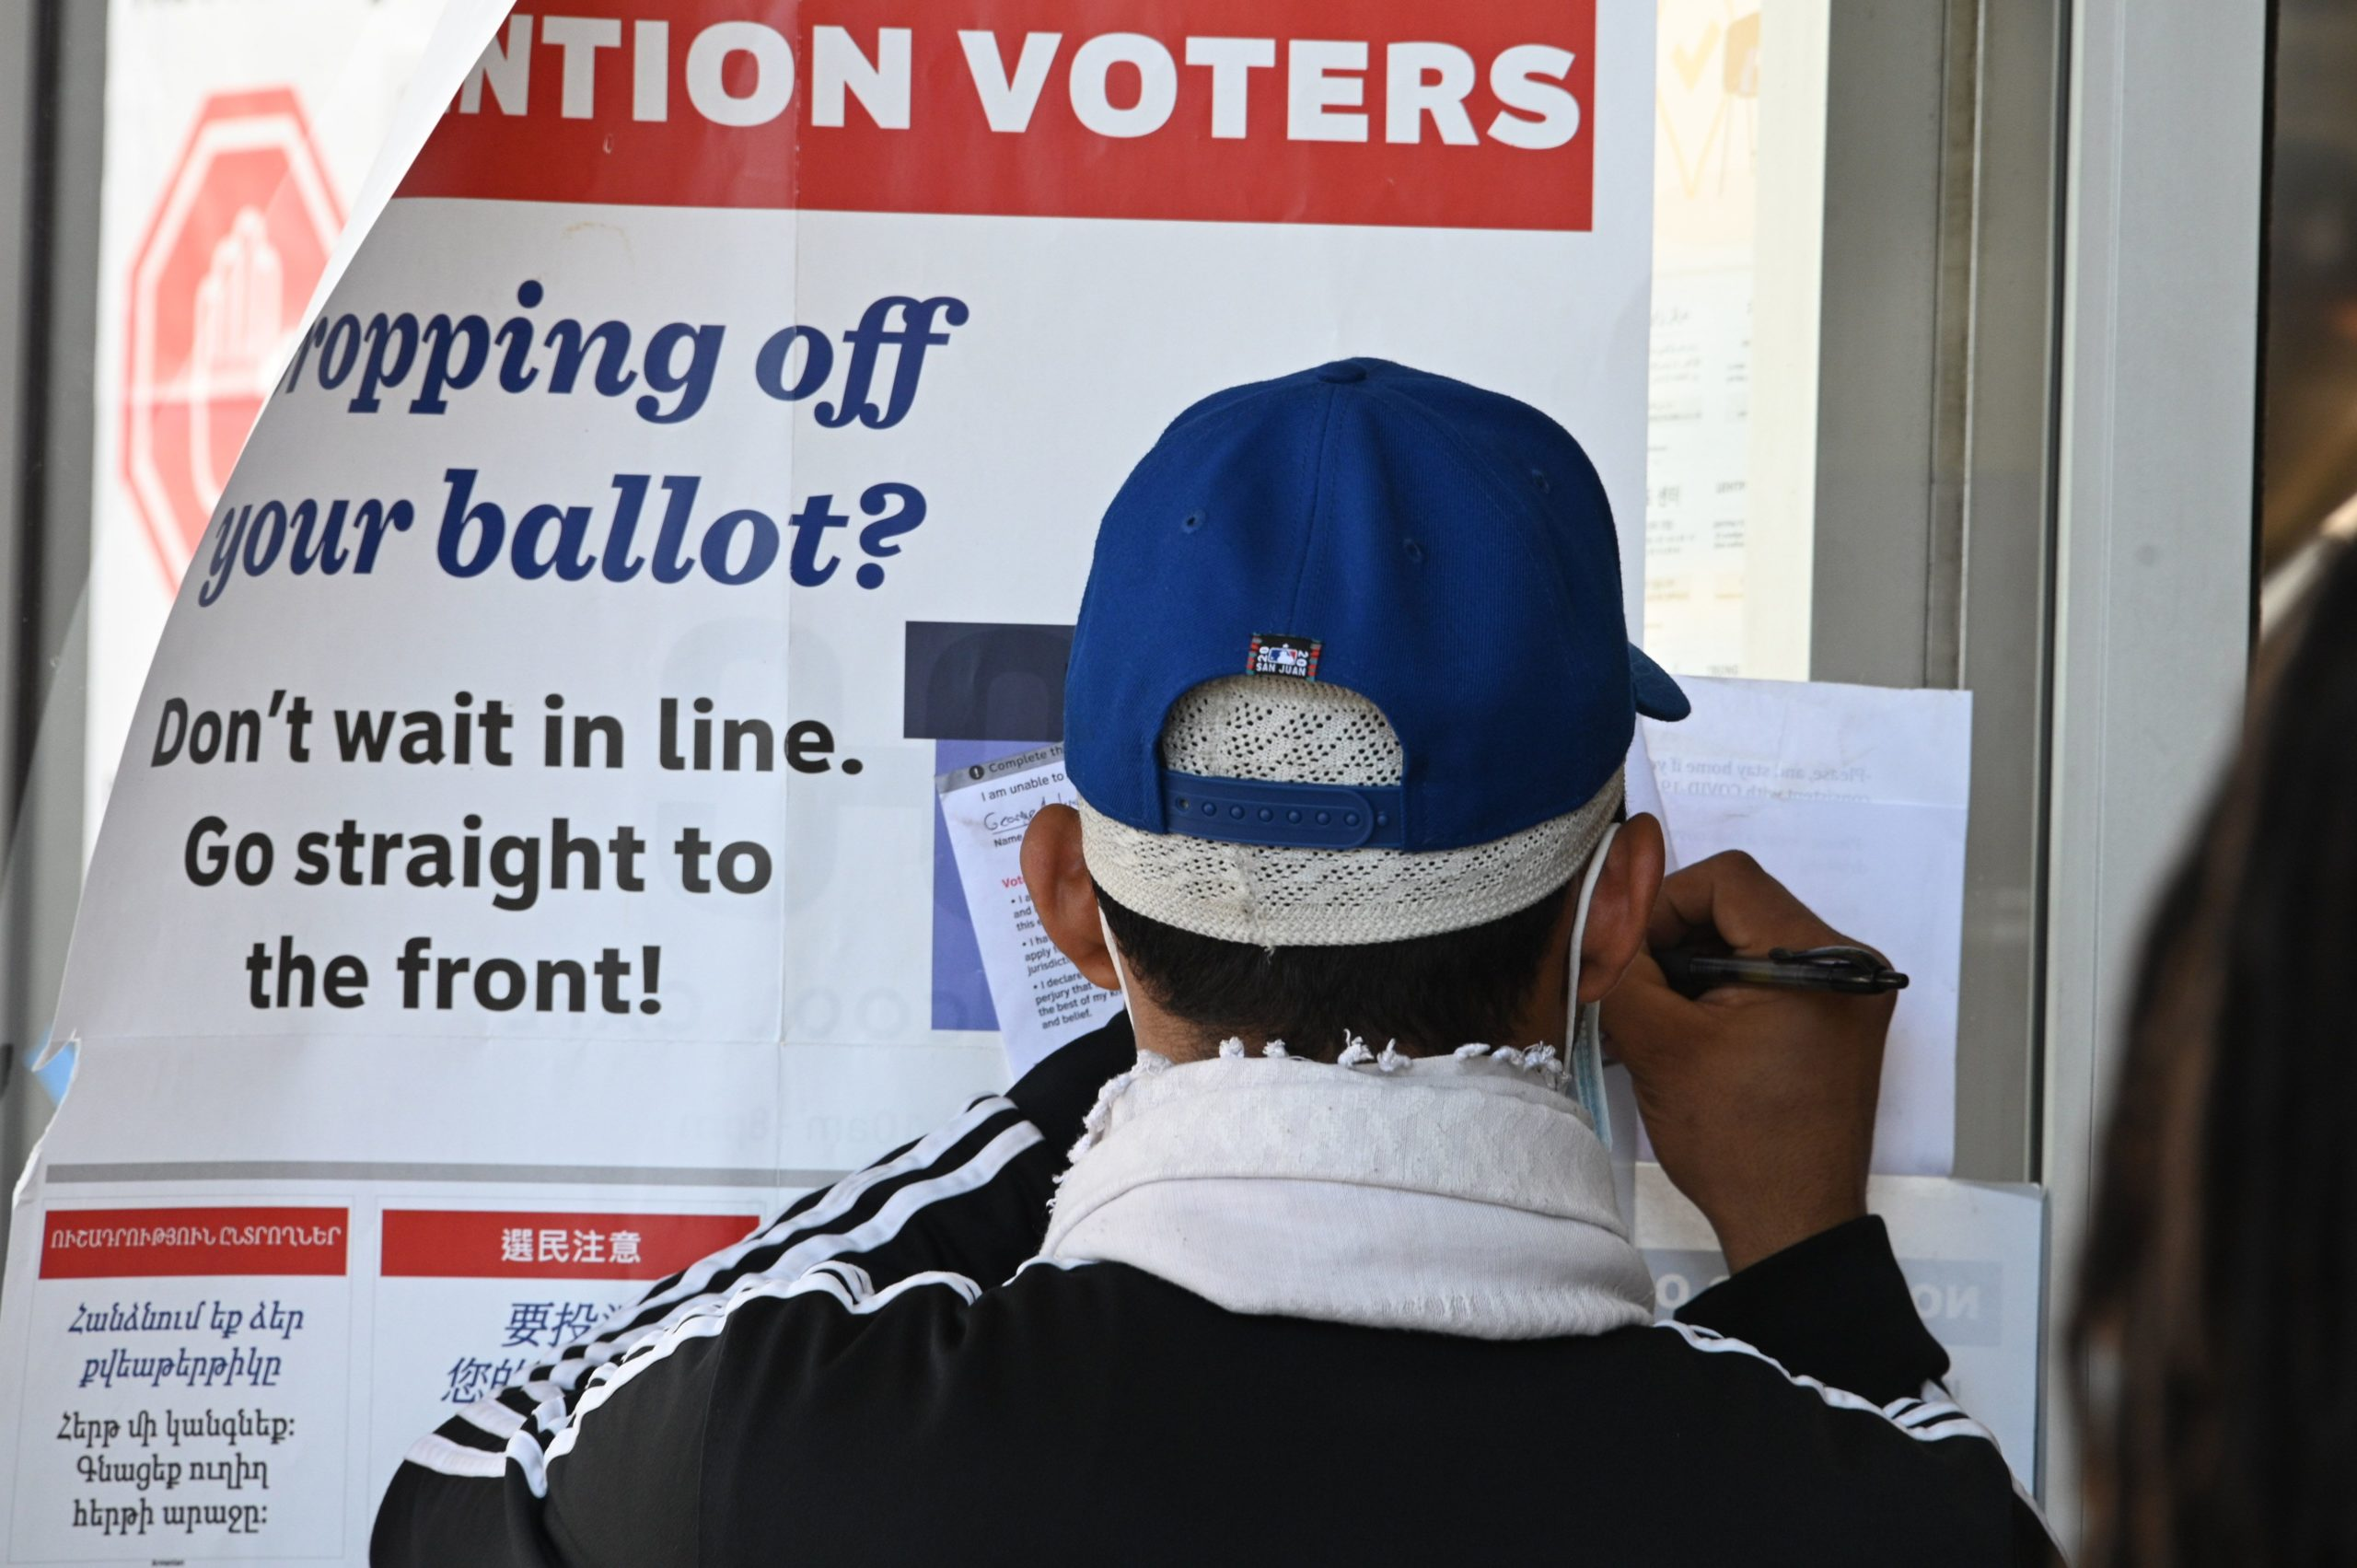 A man signs the back of his mail-in ballot before dropping it off at the vote center at the Hot & Cold Cafe in the Leimert Park neighborhood of Los Angeles, California on November 3, 2020. - Americans were voting on Tuesday under the shadow of a surging coronavirus pandemic to decide whether to reelect Republican Donald Trump, one of the most polarizing presidents in US history, or send Democrat Joe Biden to the White House. (Photo by Robyn Beck / AFP) (Photo by ROBYN BECK/AFP via Getty Images)